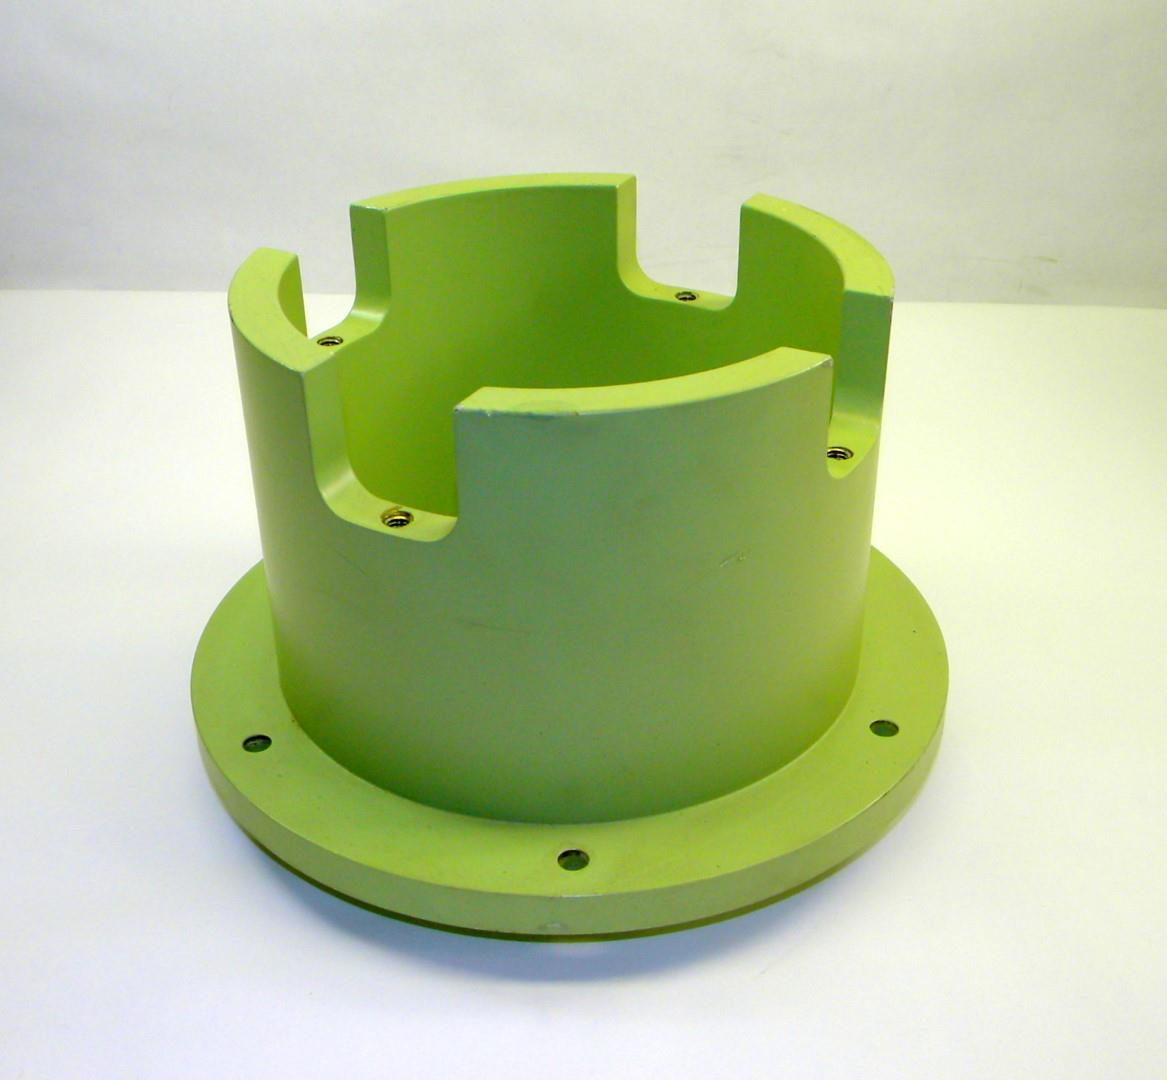 SP-1639 | 2590-01-140-4515 Ventilating F Mount for Carrier Personnel M113 A1, A2, A3. NOS.  (3).JPG